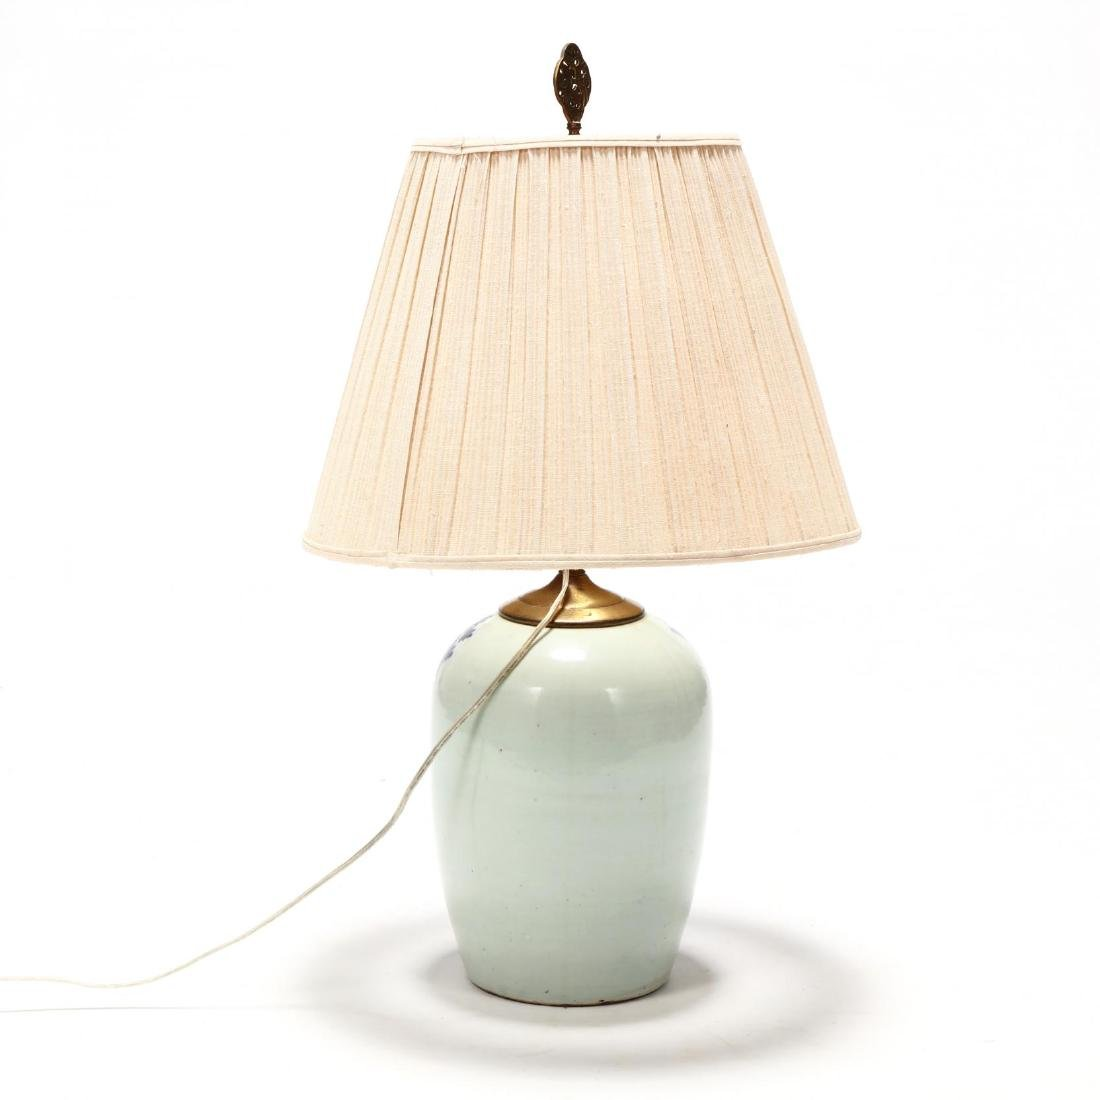 Antique Chinese Blue and White Porcelain Table Lamp - 2